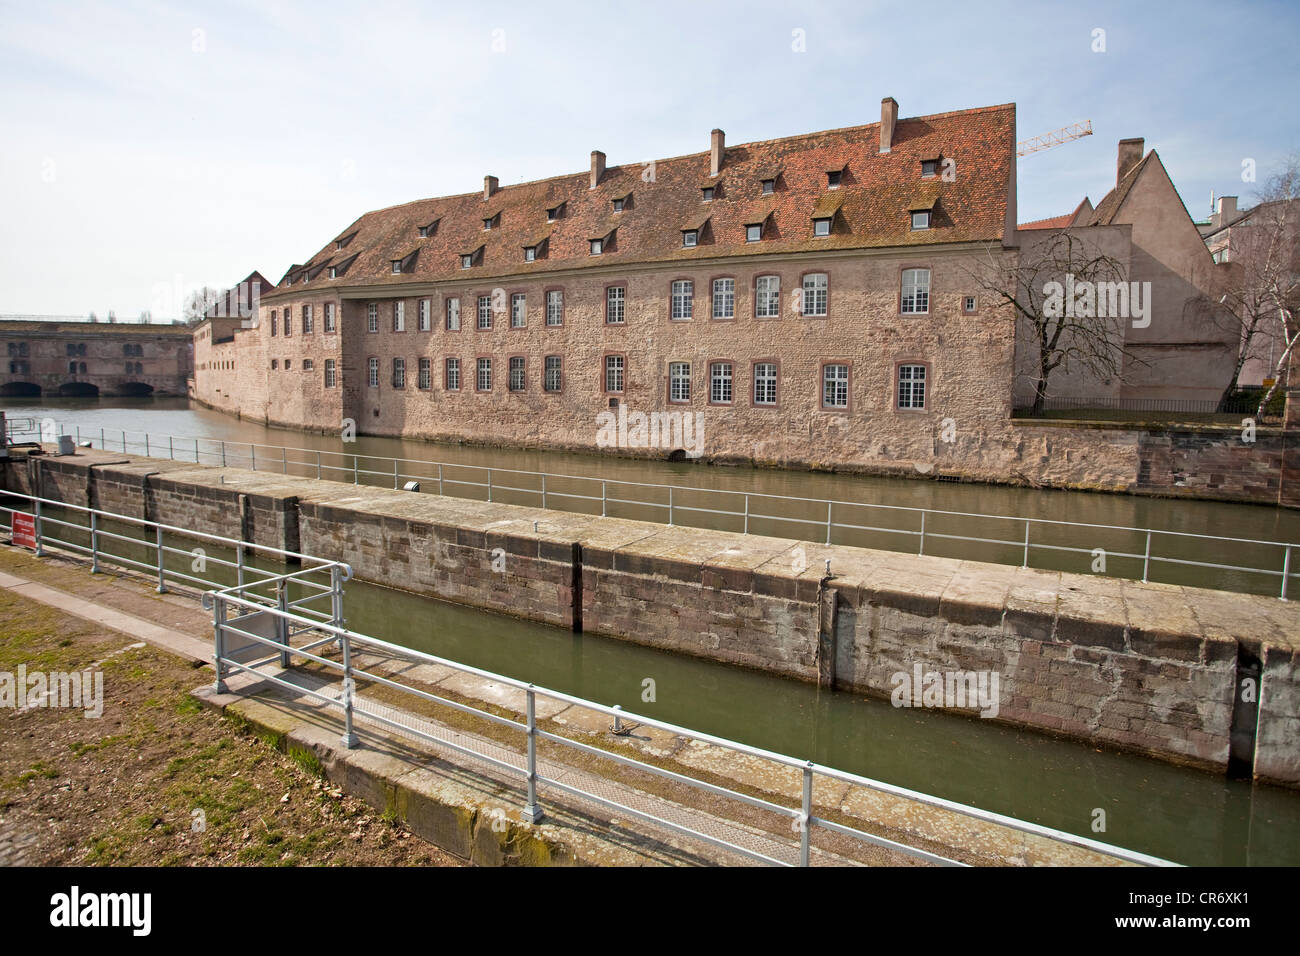 Barrage Vauban, former city fortifications on the Ill River, barrage, Strasbourg, Alsace, France, Europe - Stock Image